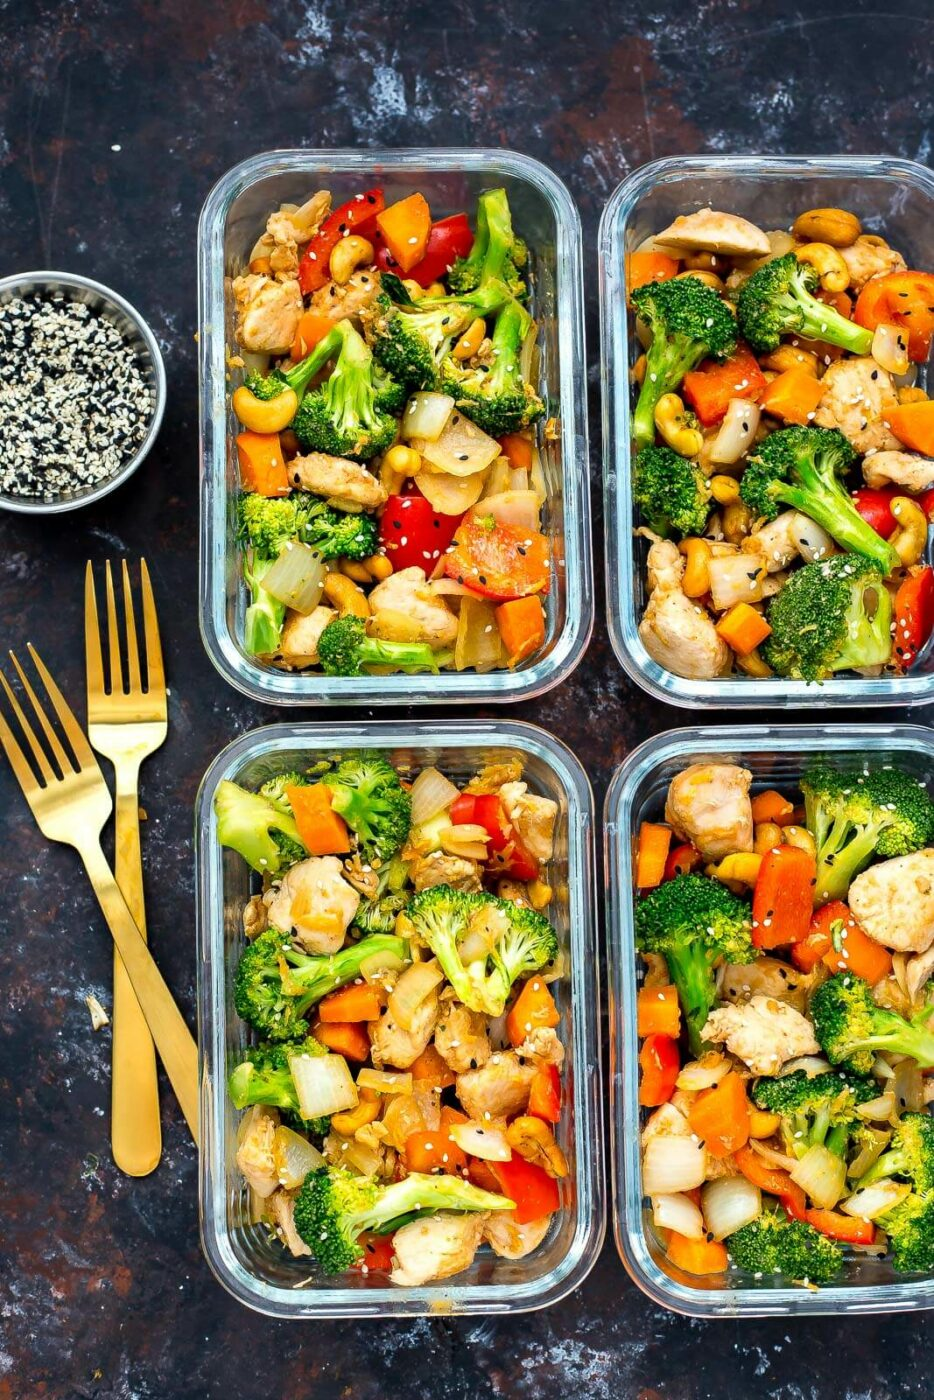 15 Healthy Chicken Recipes for Weight Loss (Part 2) - Recipes for Weight Loss, Healthy Chicken Recipes for Weight Loss, Healthy Chicken Recipes, Chicken Recipes for Weight Loss